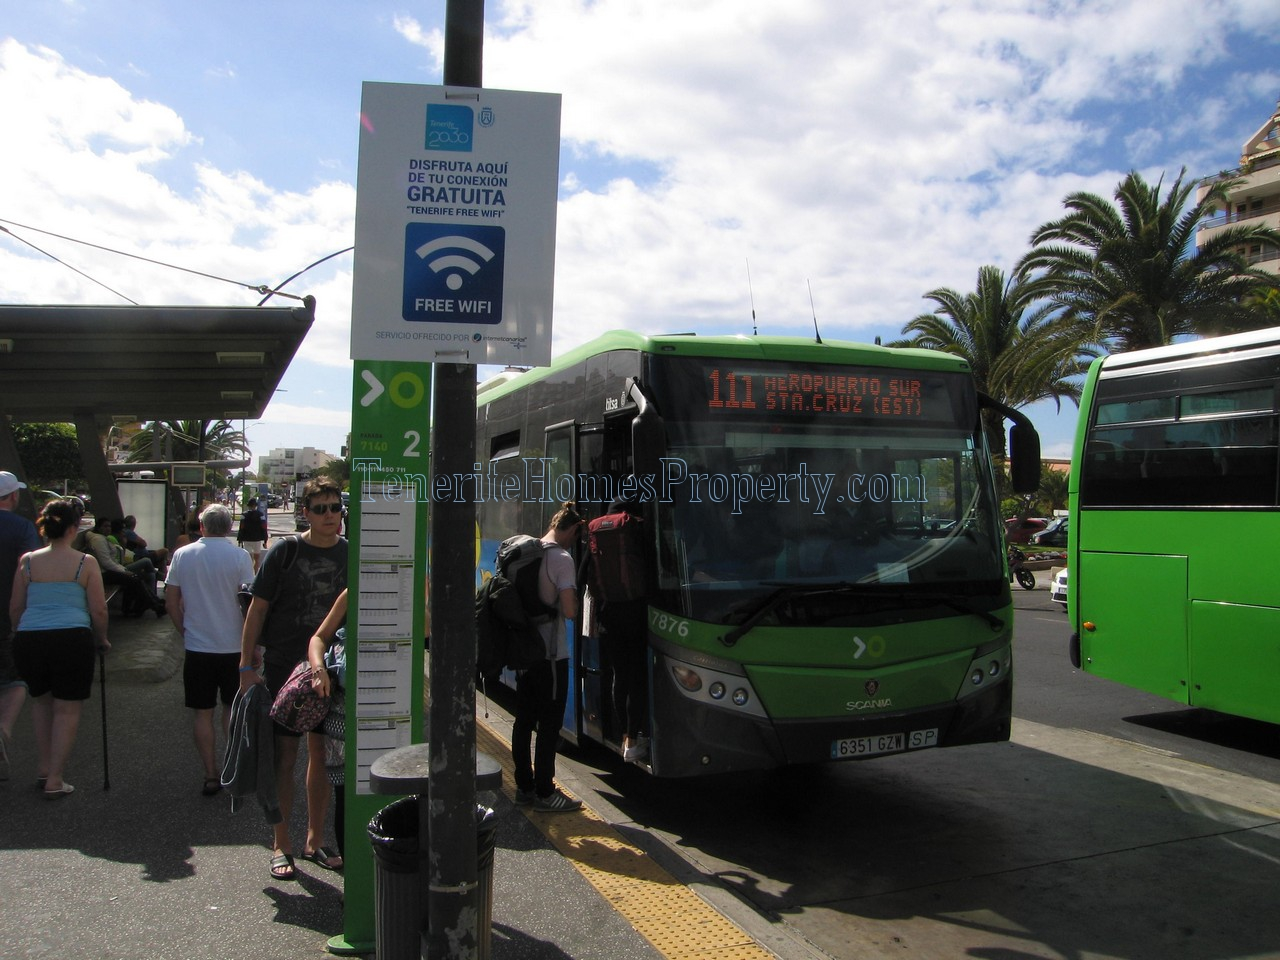 Tenerife bus in Los Cristianos bus station 111